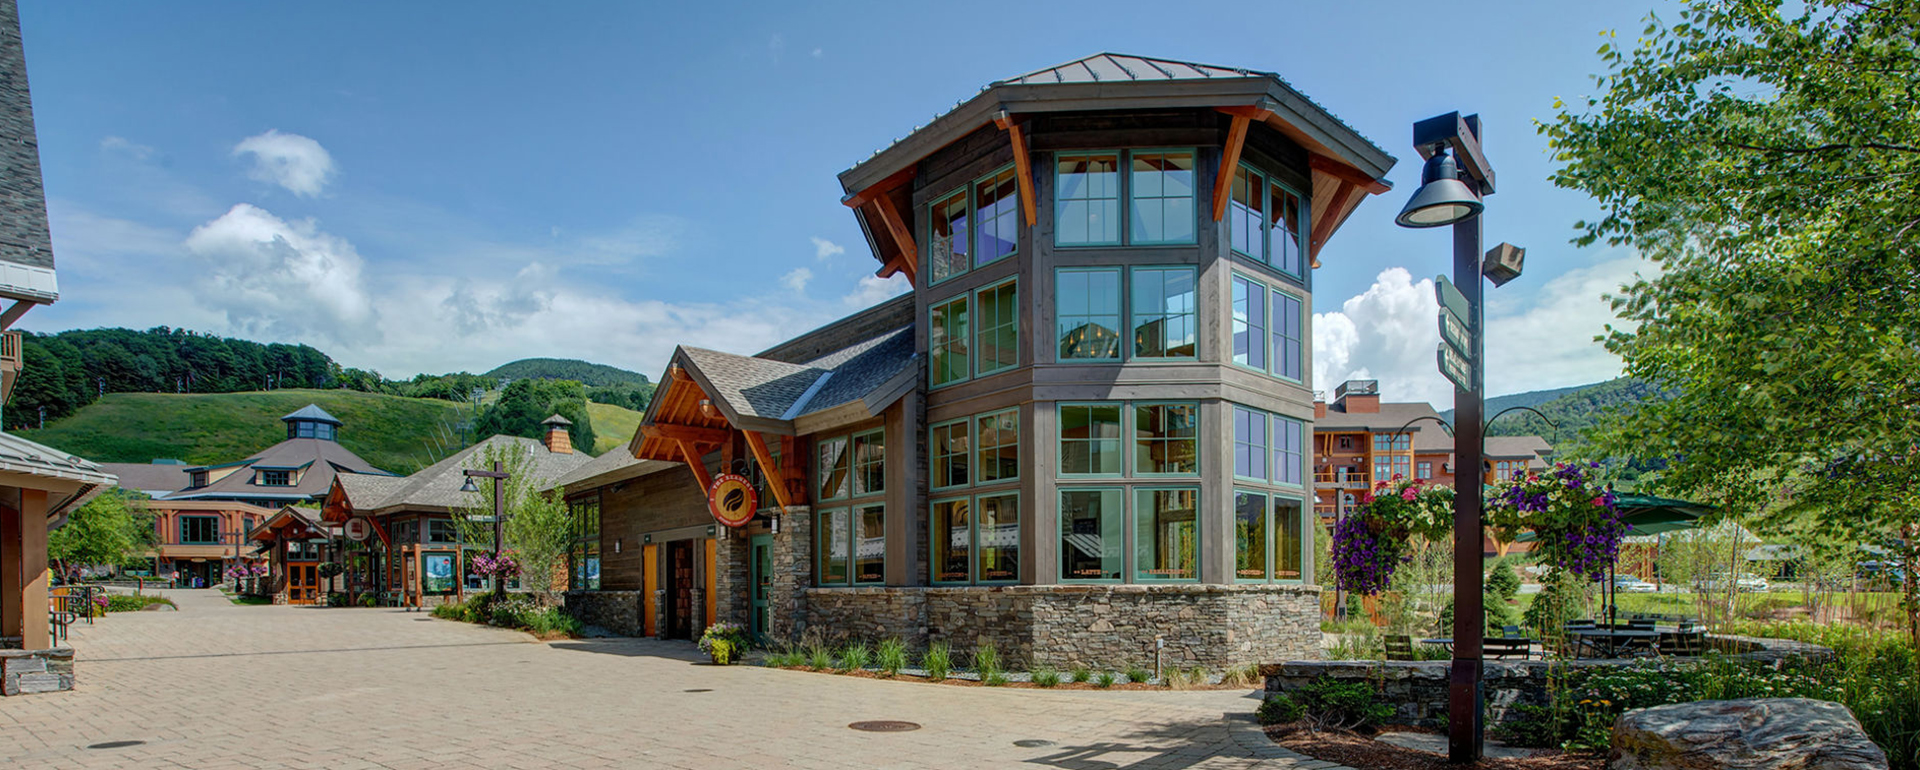 Coffee Shops In Spruce Peak Vermont | Spruce Peak - The Beanery